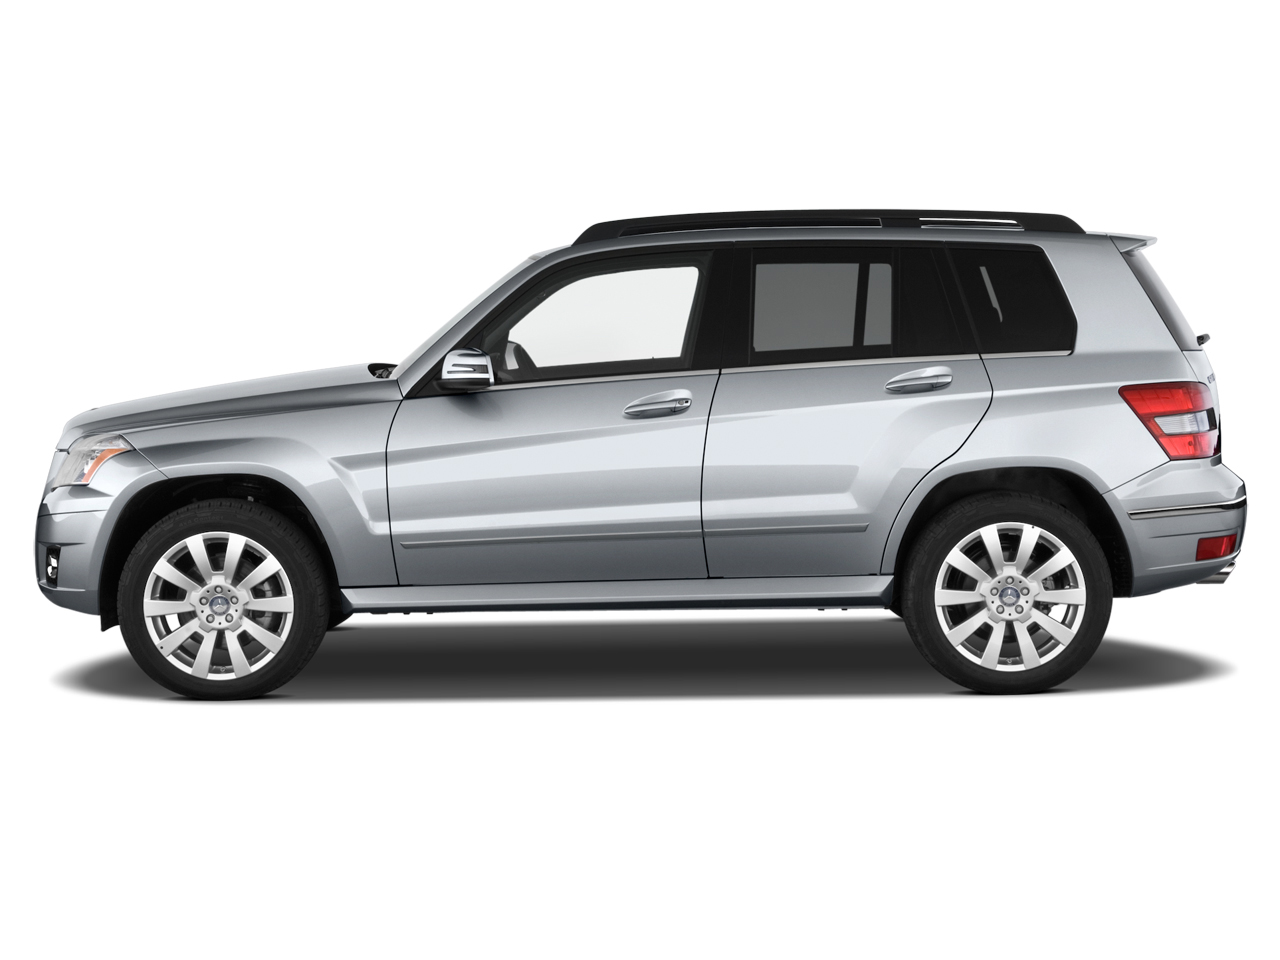 2012 mercedes benz glk class gas mileage the car connection. Black Bedroom Furniture Sets. Home Design Ideas